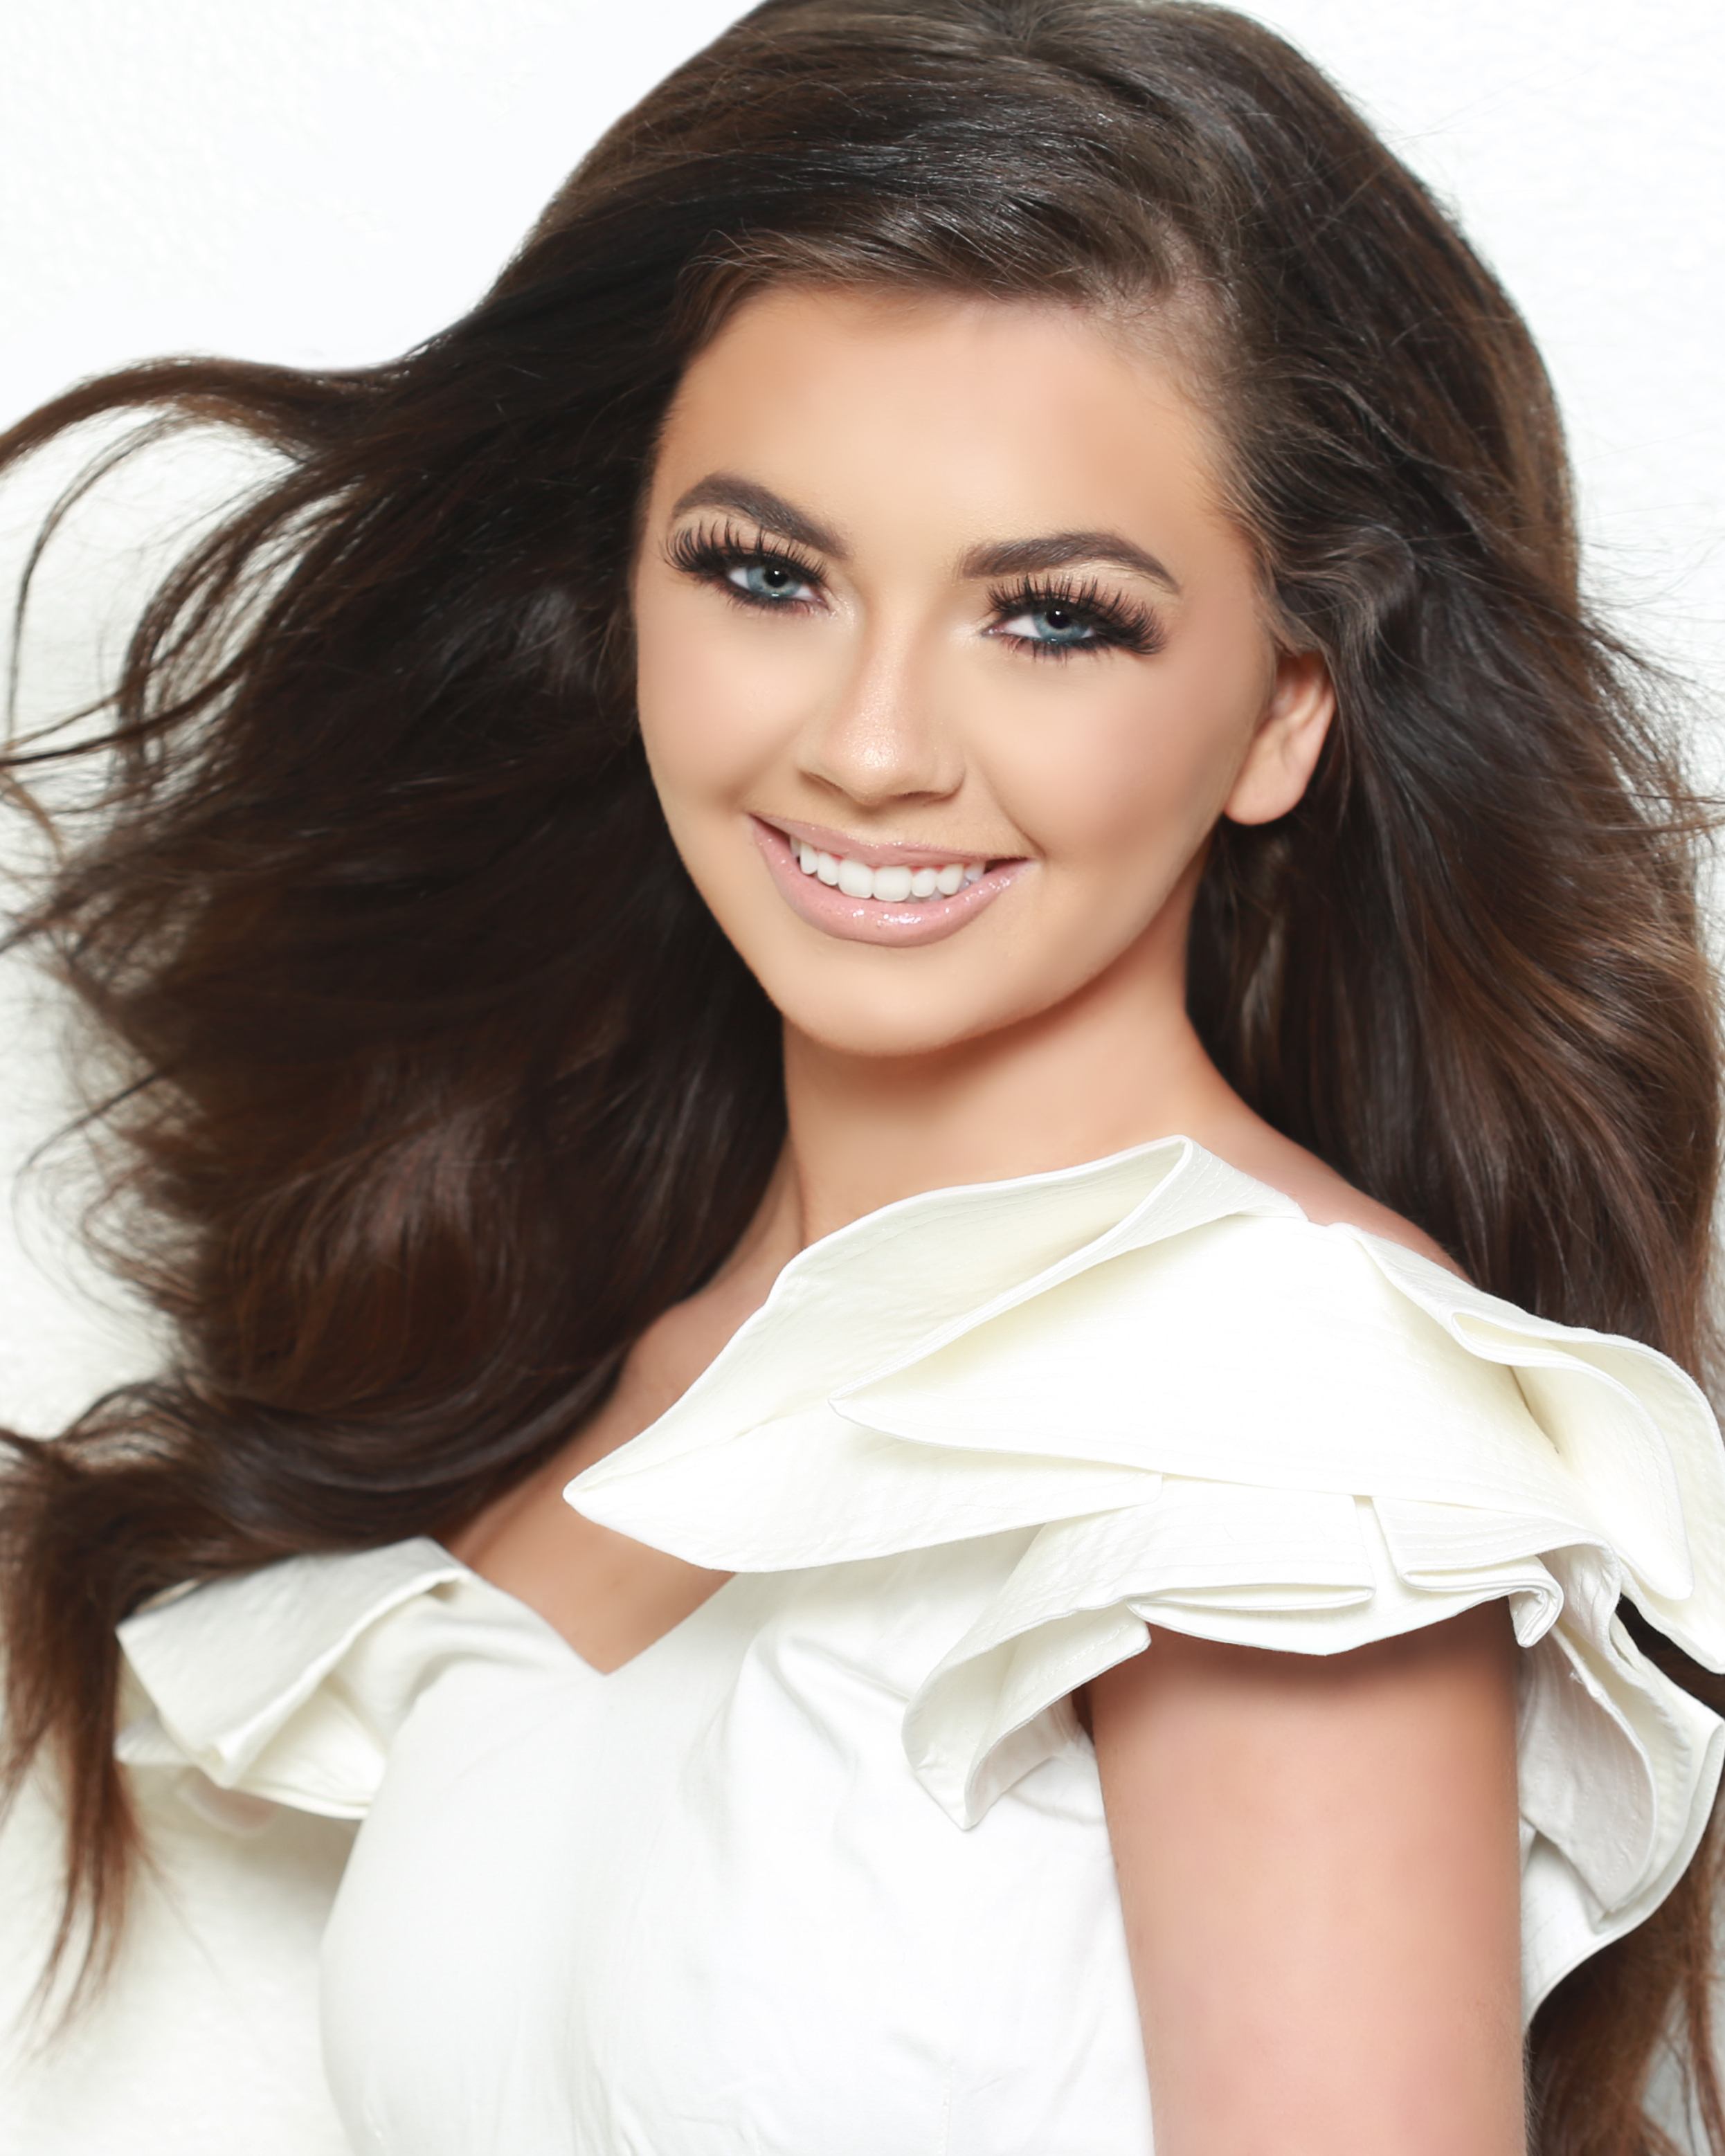 We need to see how to create education better: Miss Utah